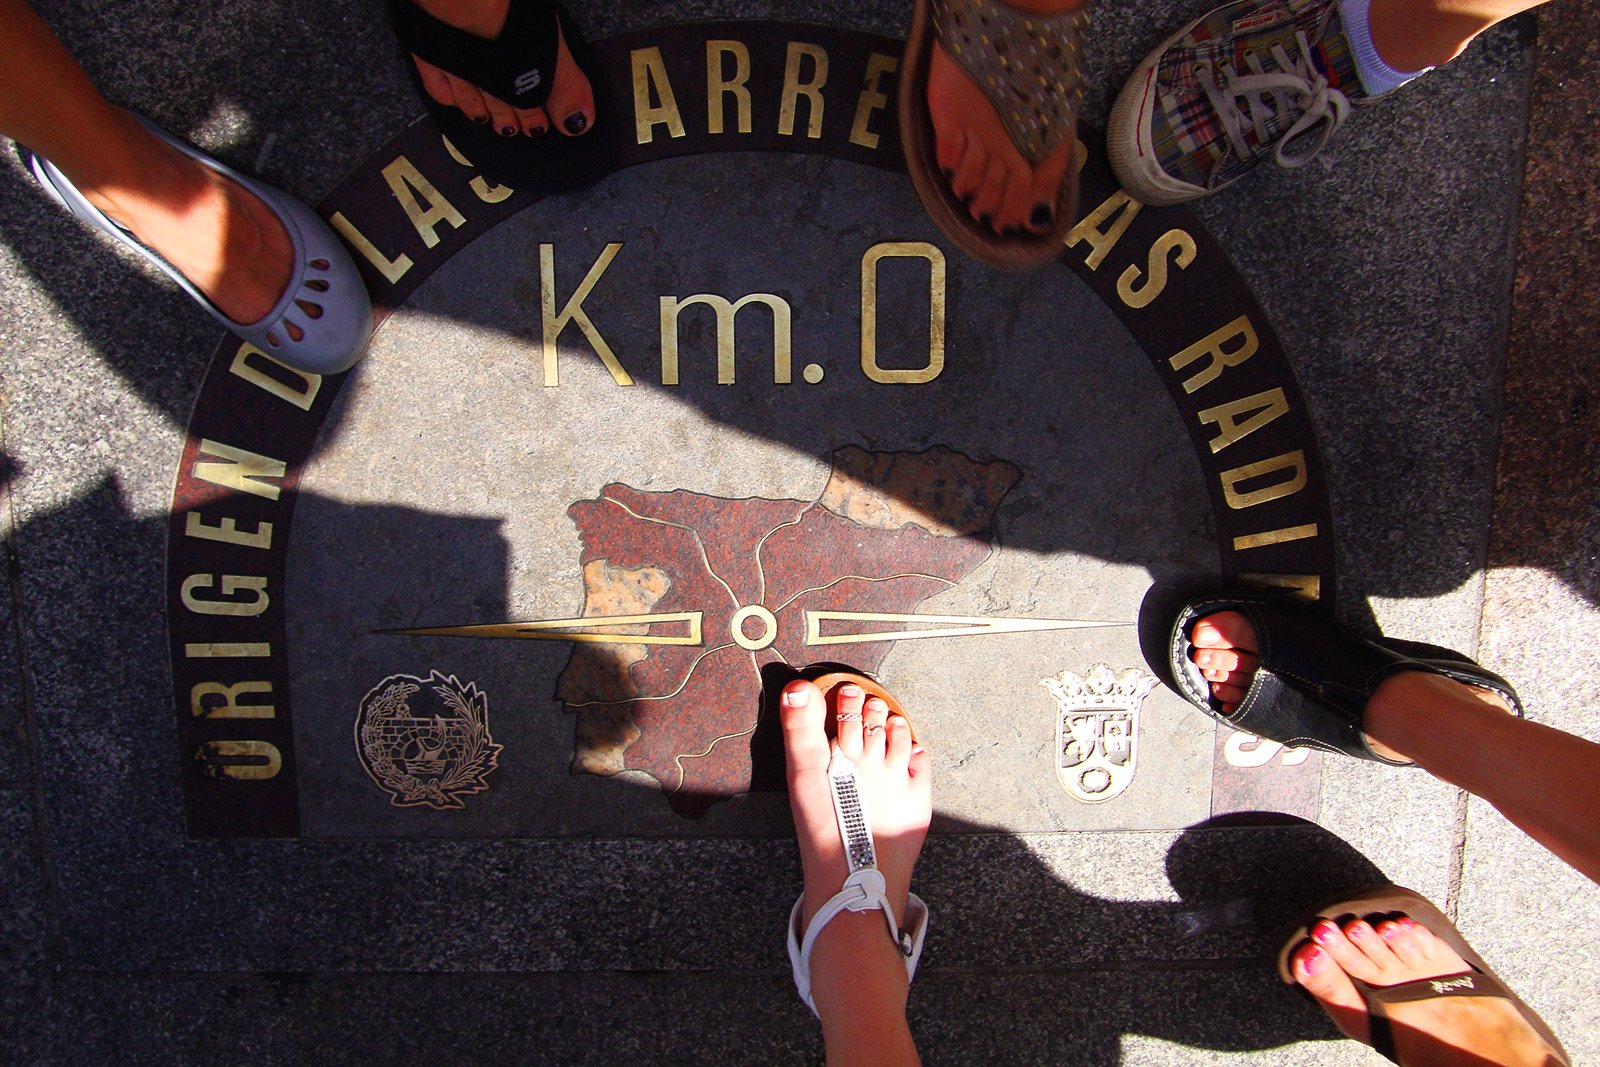 How to find zero kilometer on Puerta del Sol in Madrid